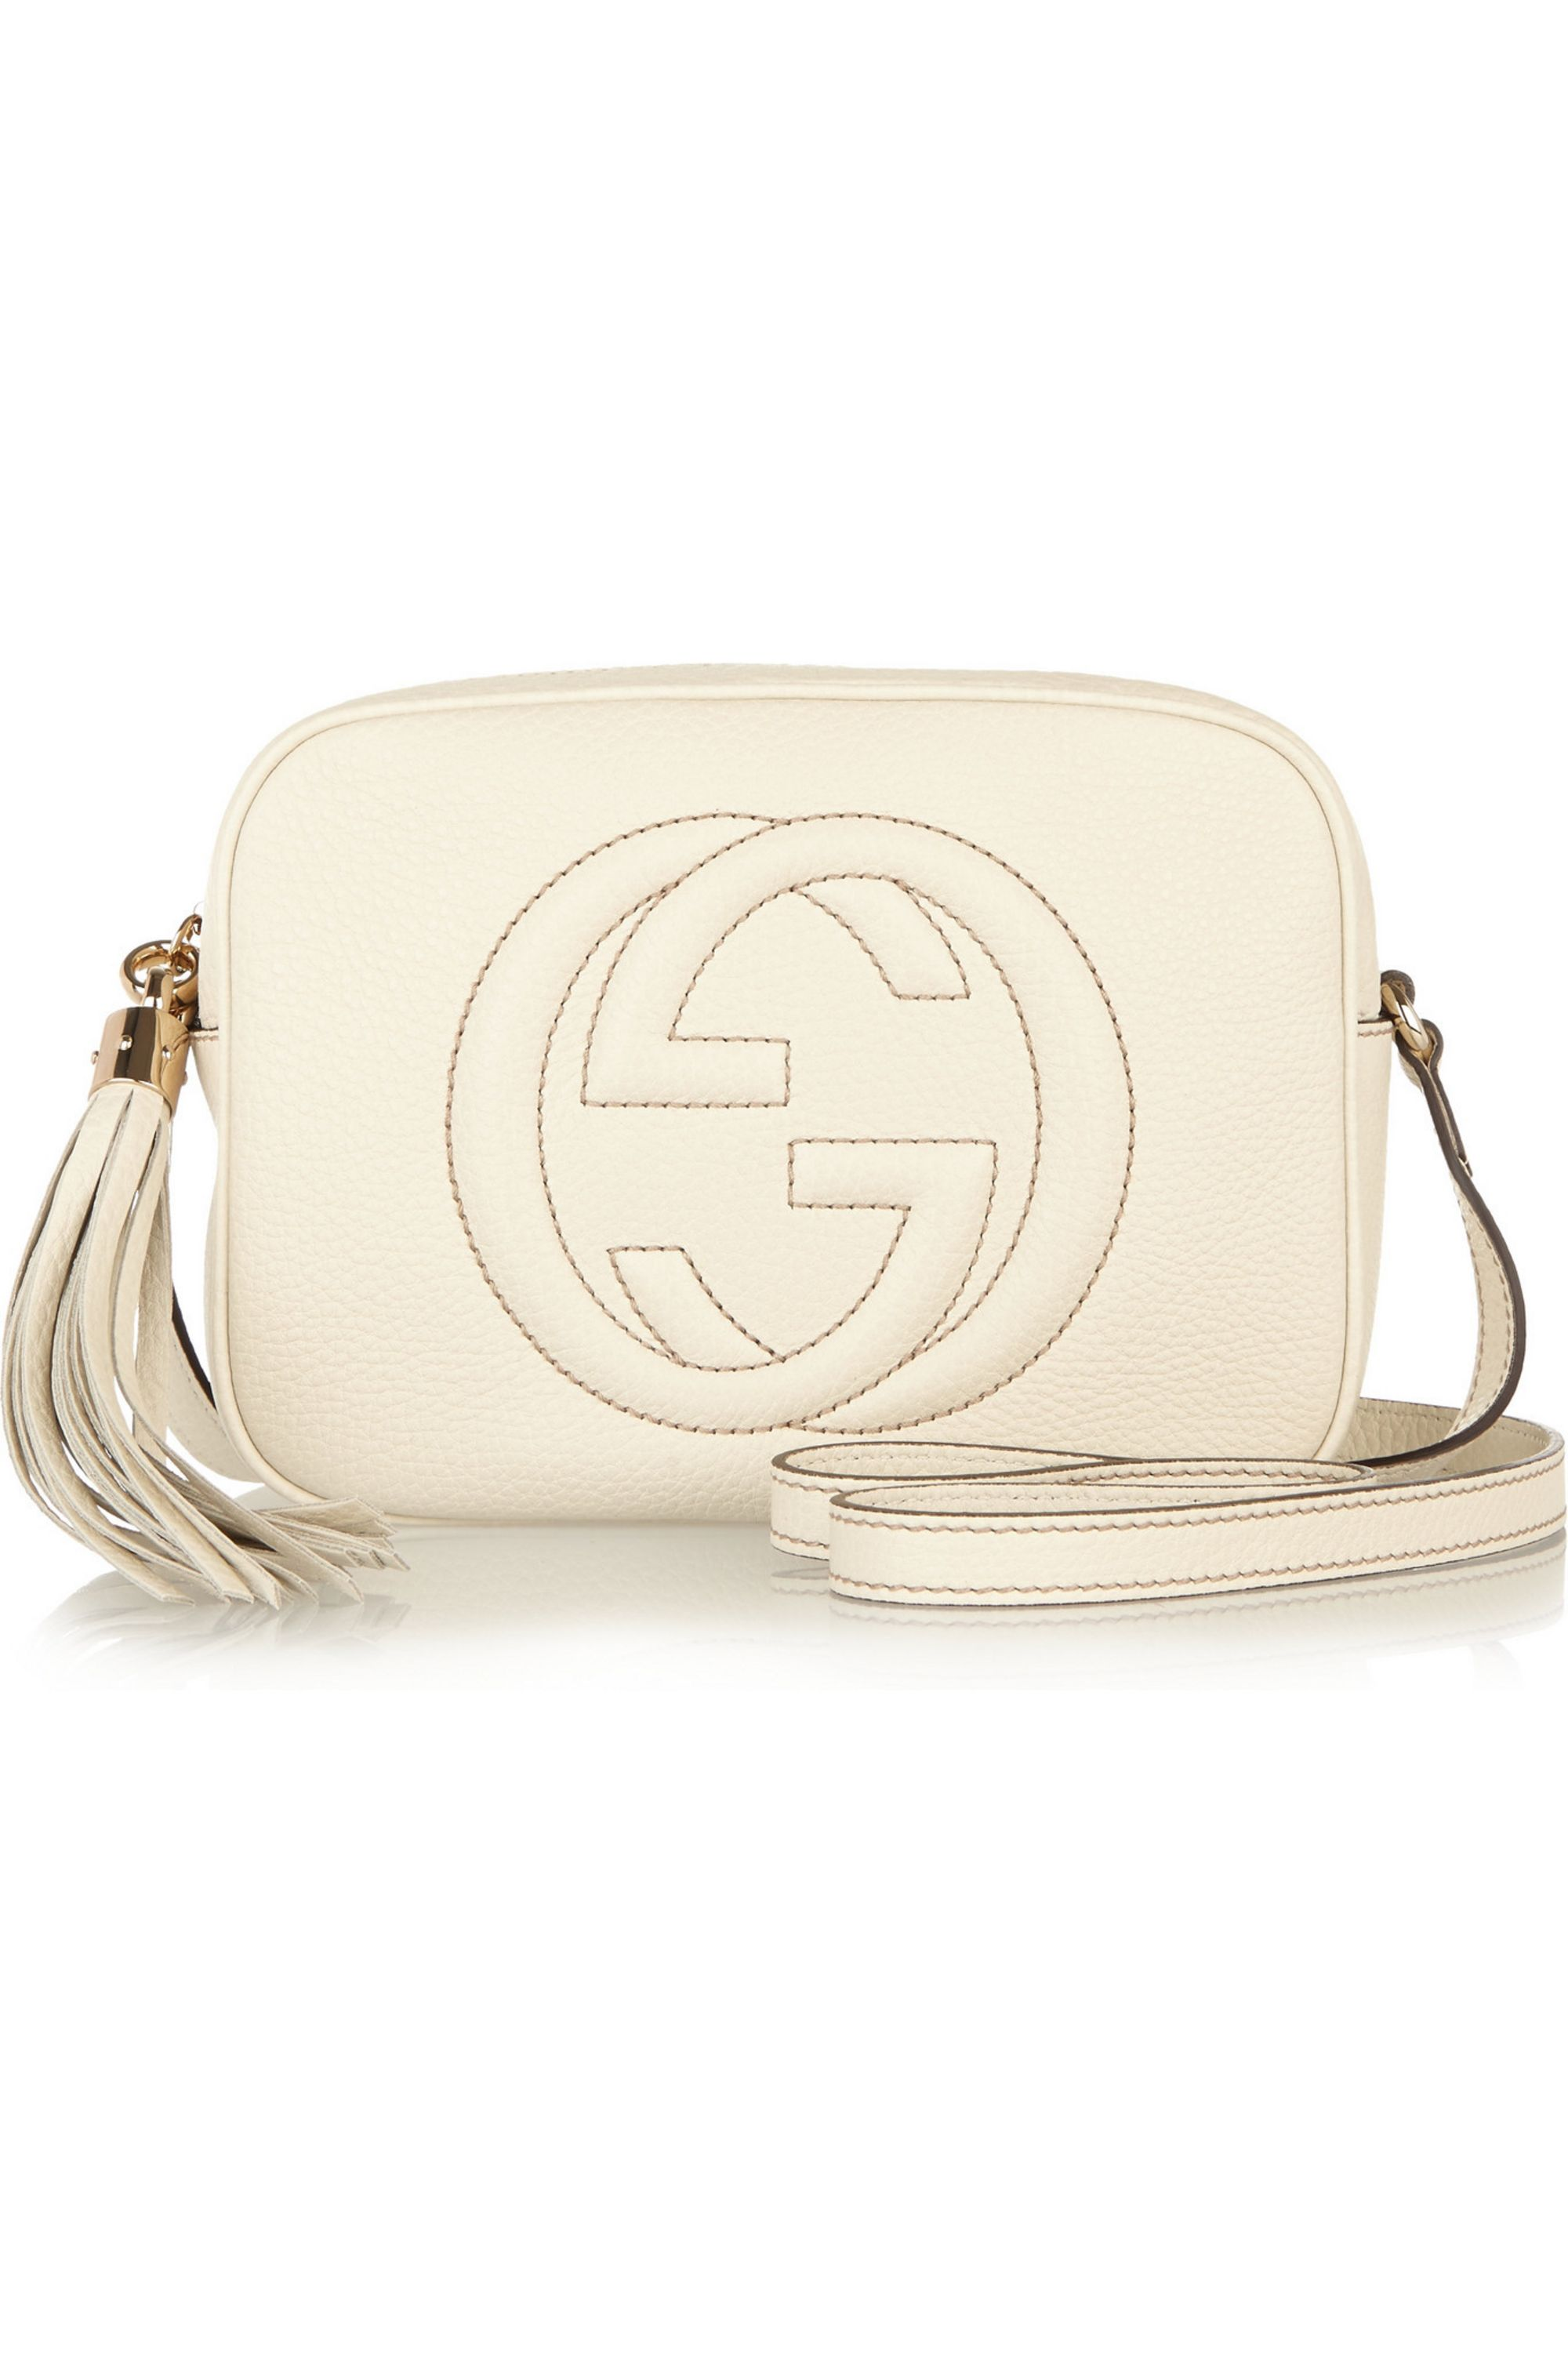 Gucci Soho Disco small textured-leather shoulder bag